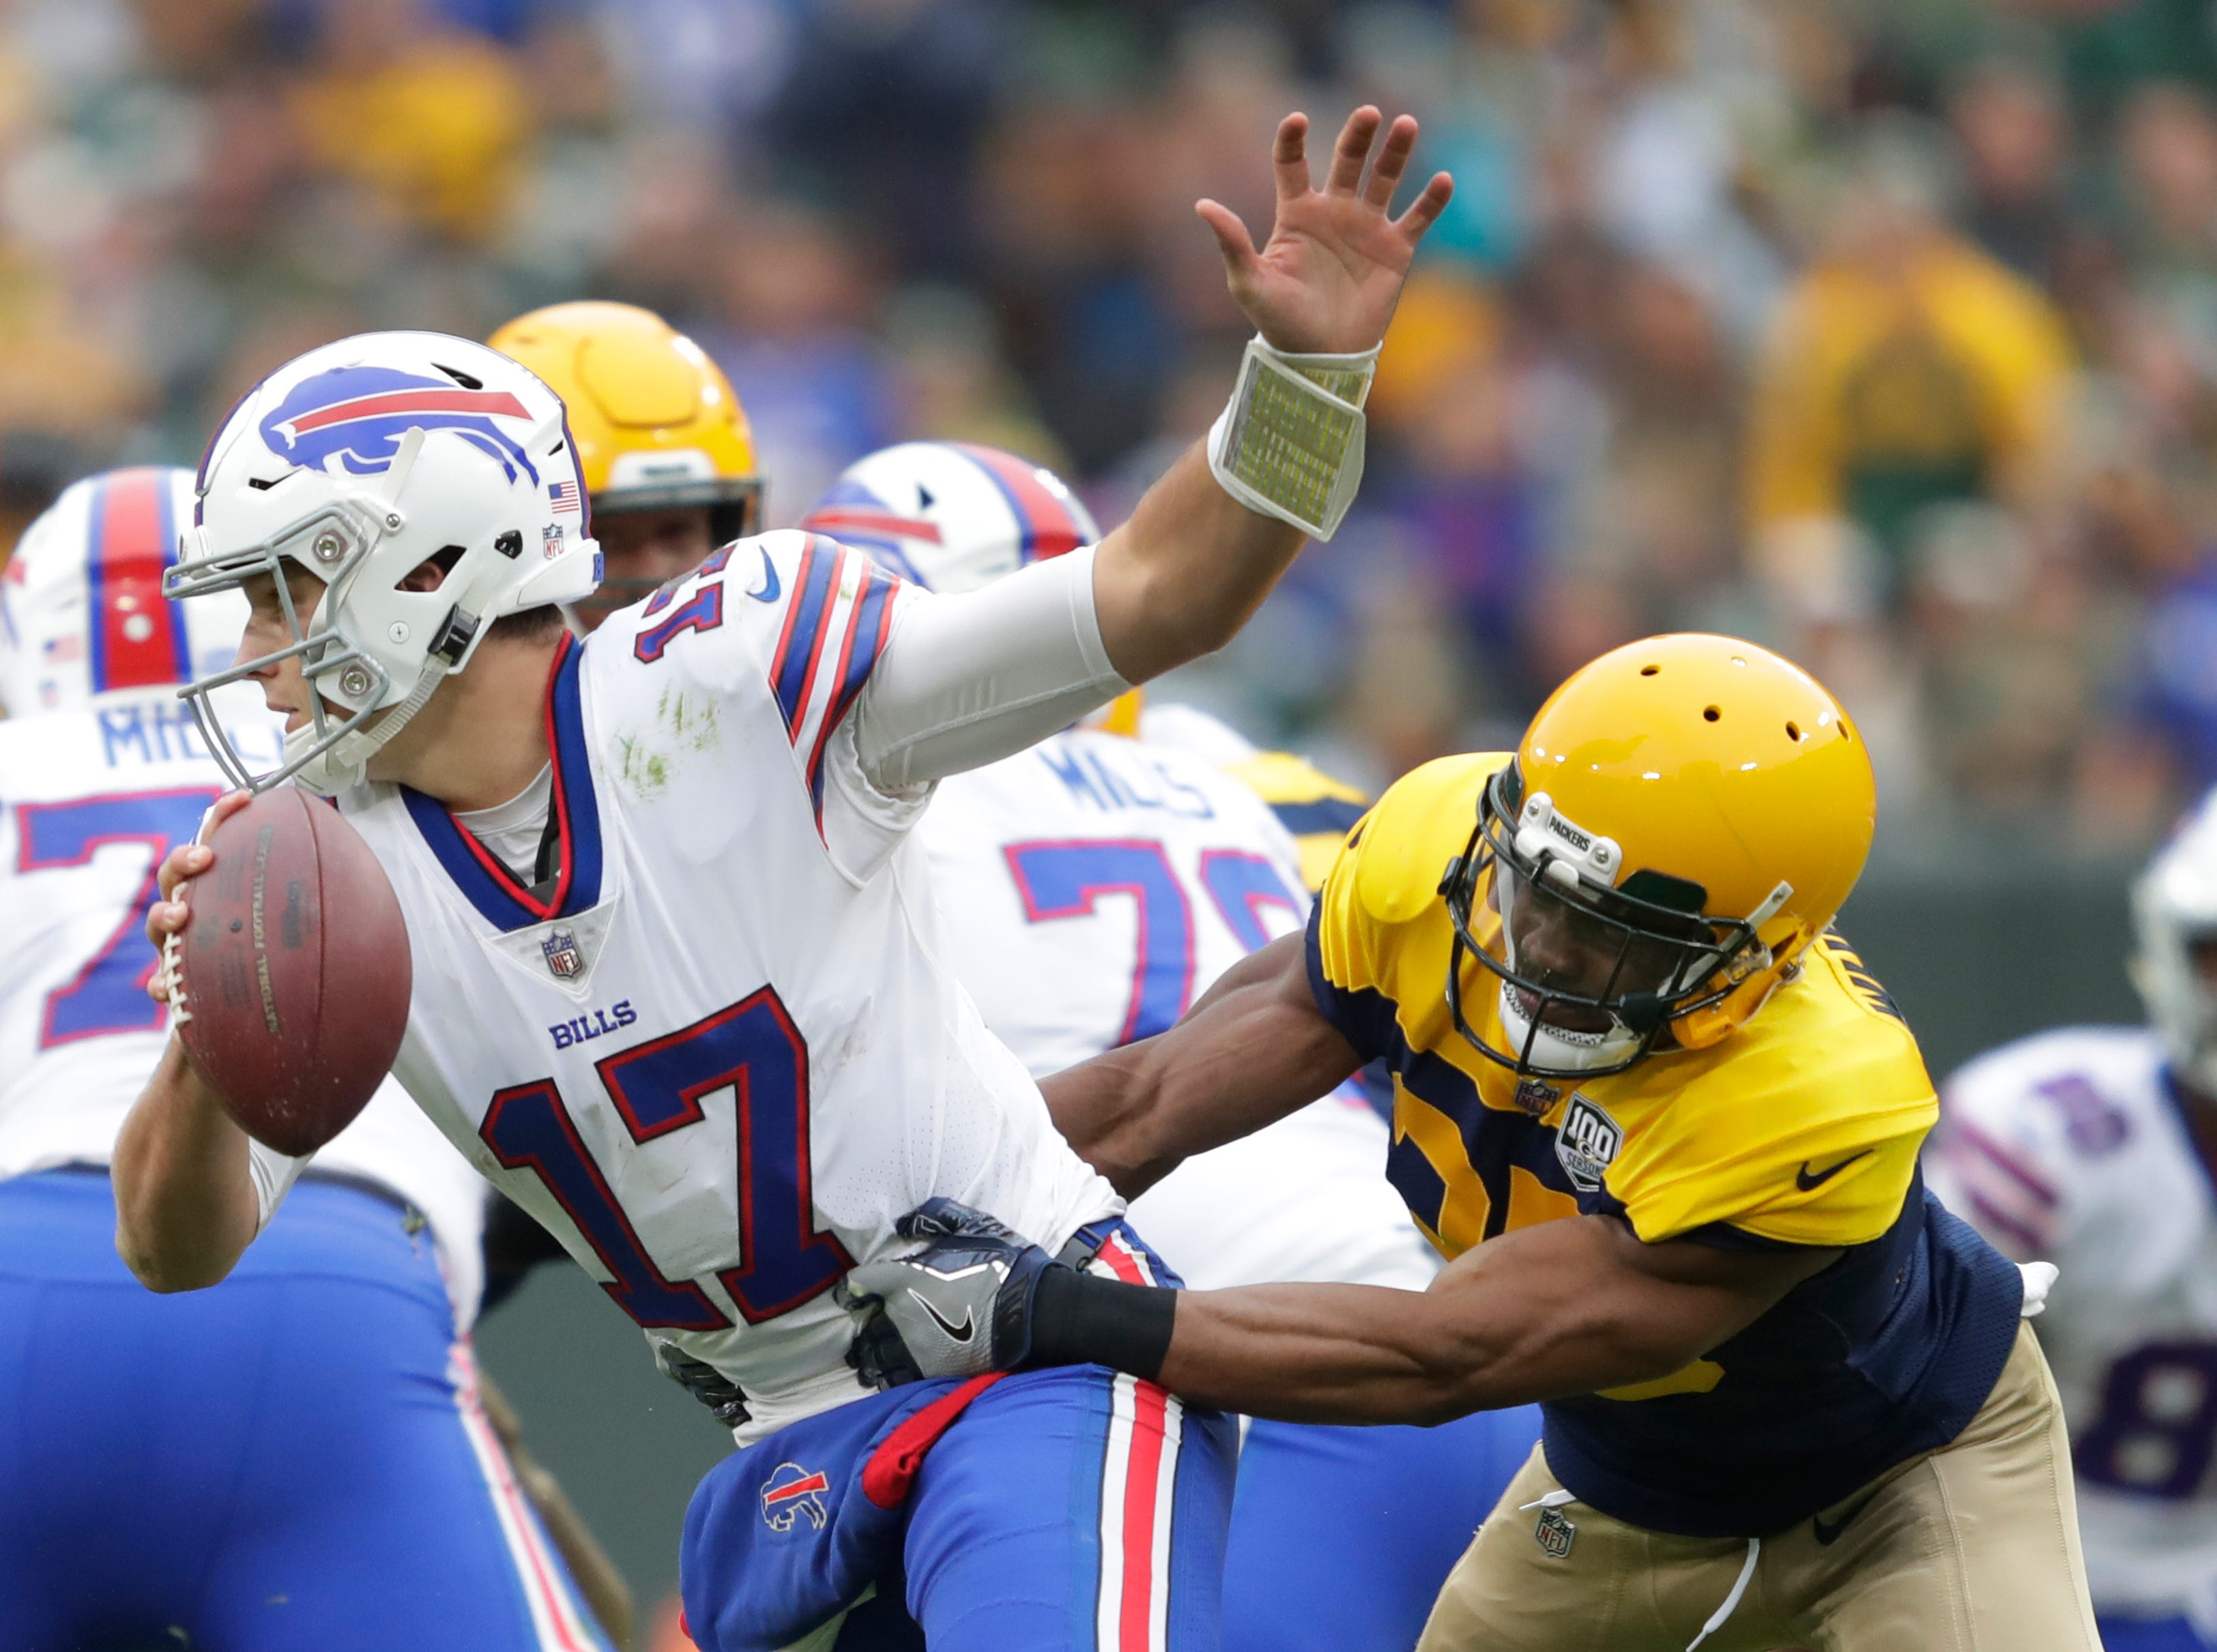 Green Bay Packers defensive back Jermaine Whitehead (35) sacks Buffalo Bills quarterback Josh Allen (17) in the third quarter during their football game Sunday, Sept. 30, 2018, at Lambeau Field in Green Bay, Wis. 